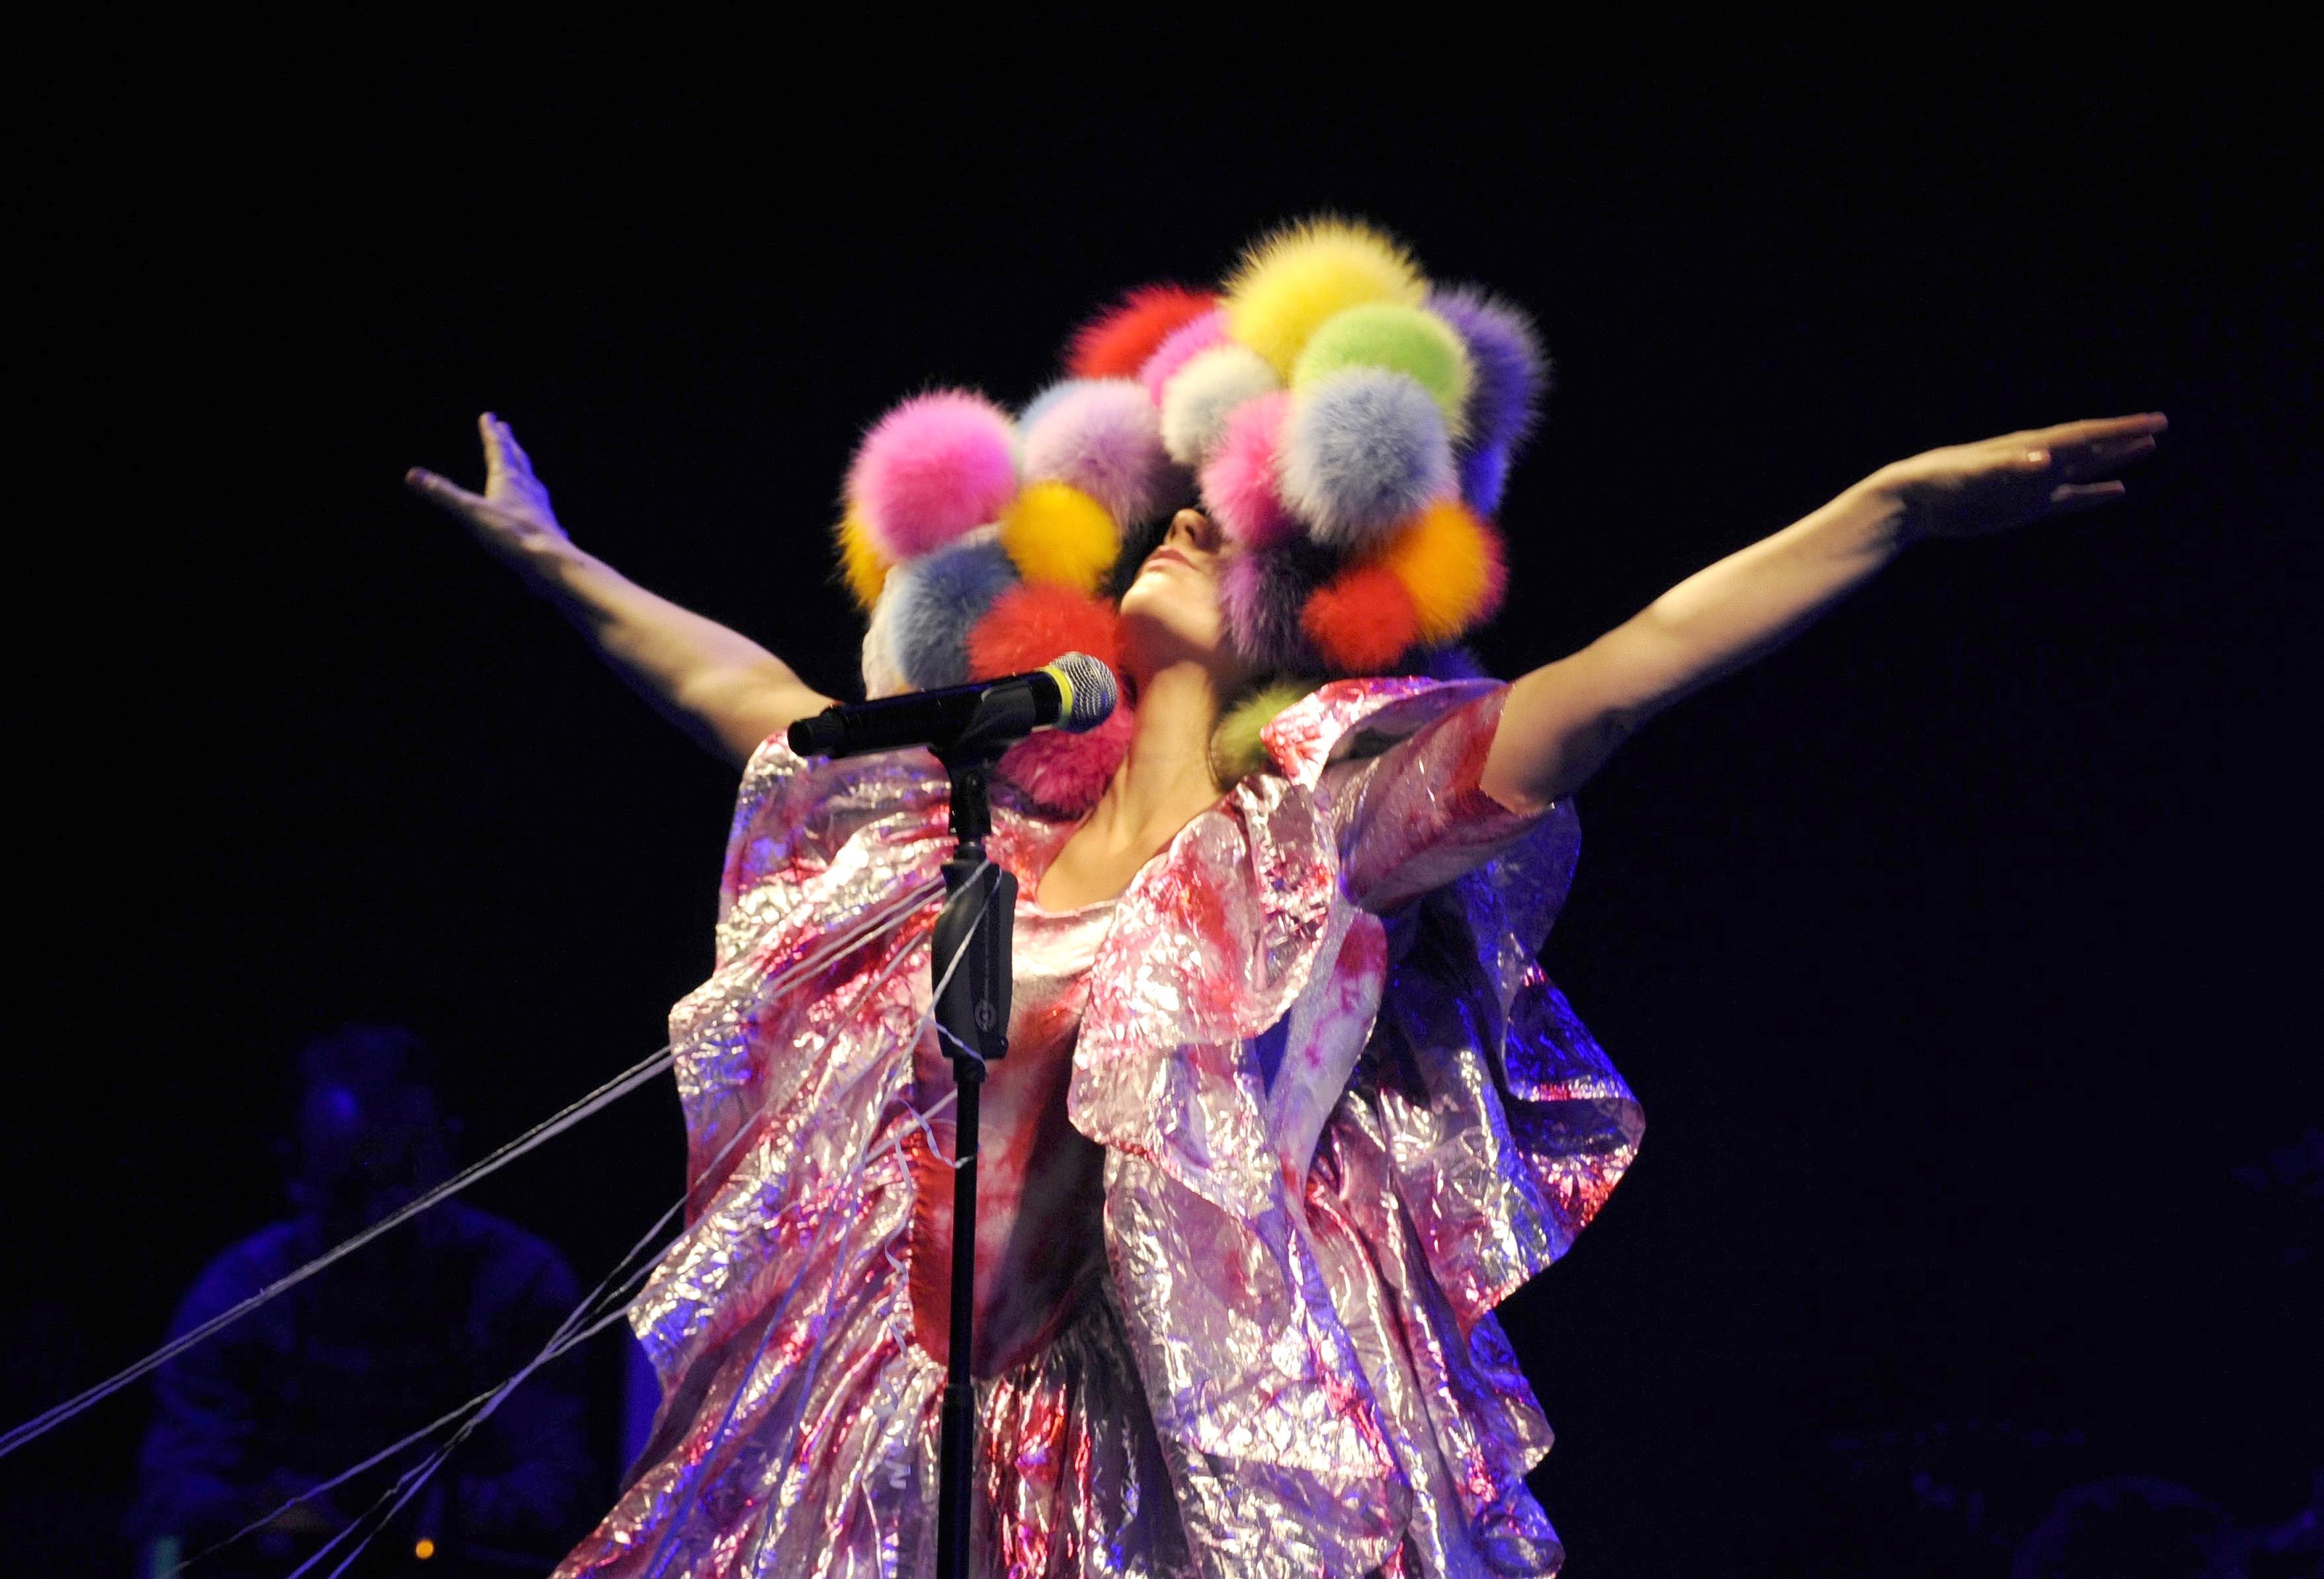 Bjork performs at Hammersmith Apollo in London on April 14, 2008.